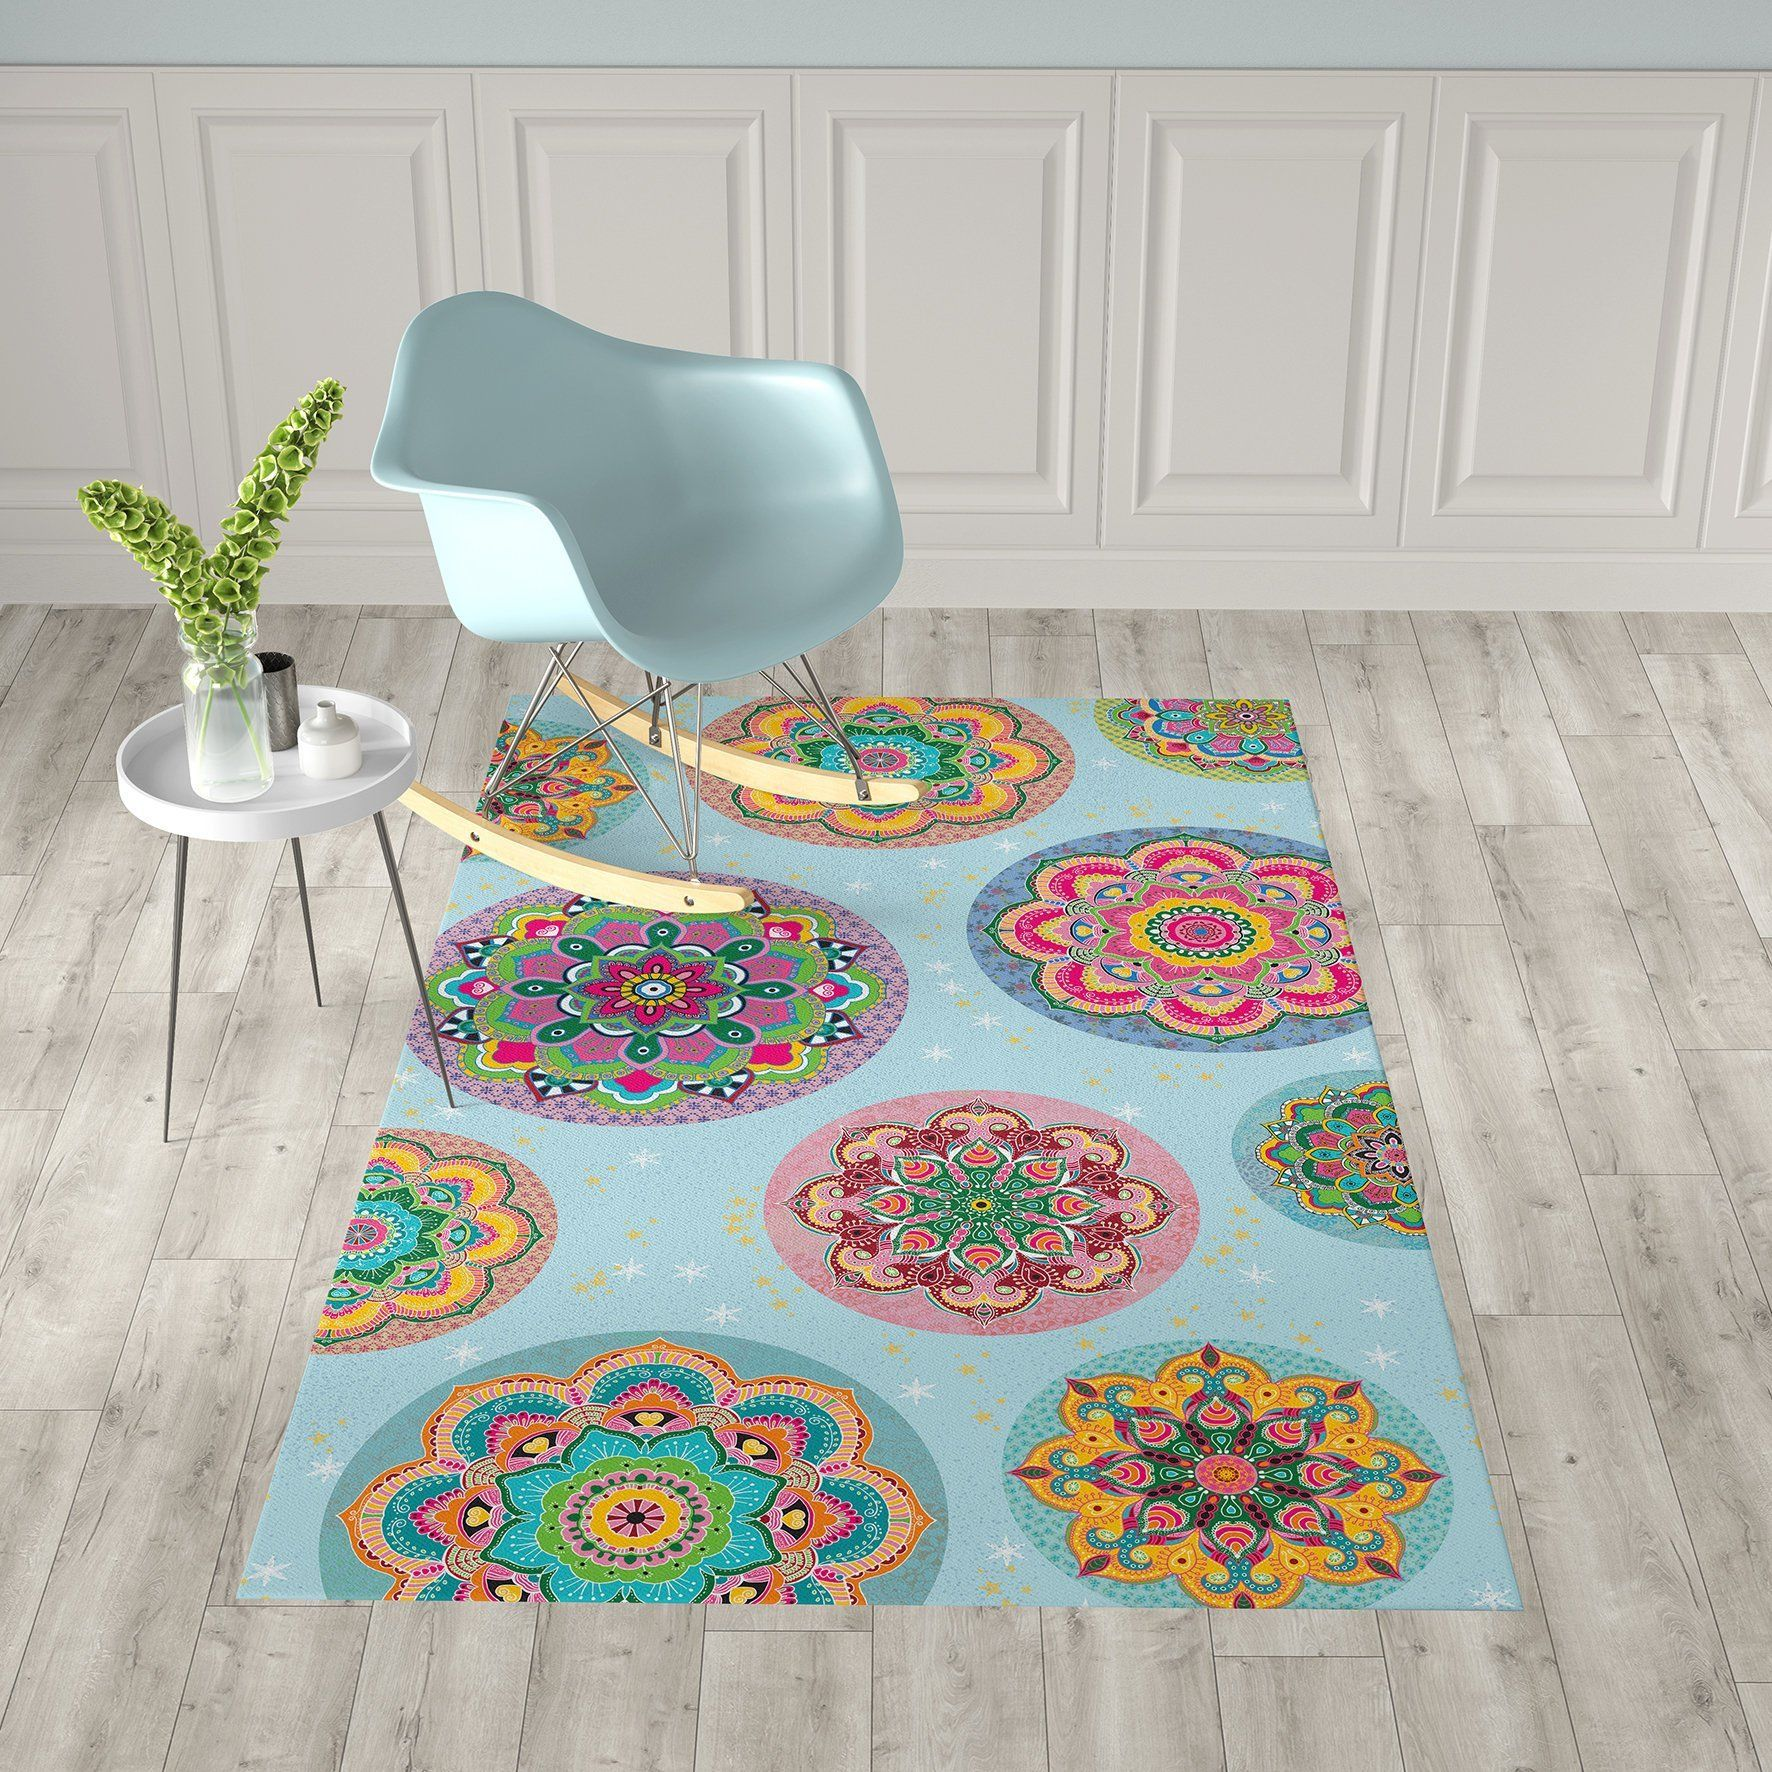 Vinyl Floor Mats >> Large Mandala Vinyl Area Mat Beautiful Home Office Rug Non